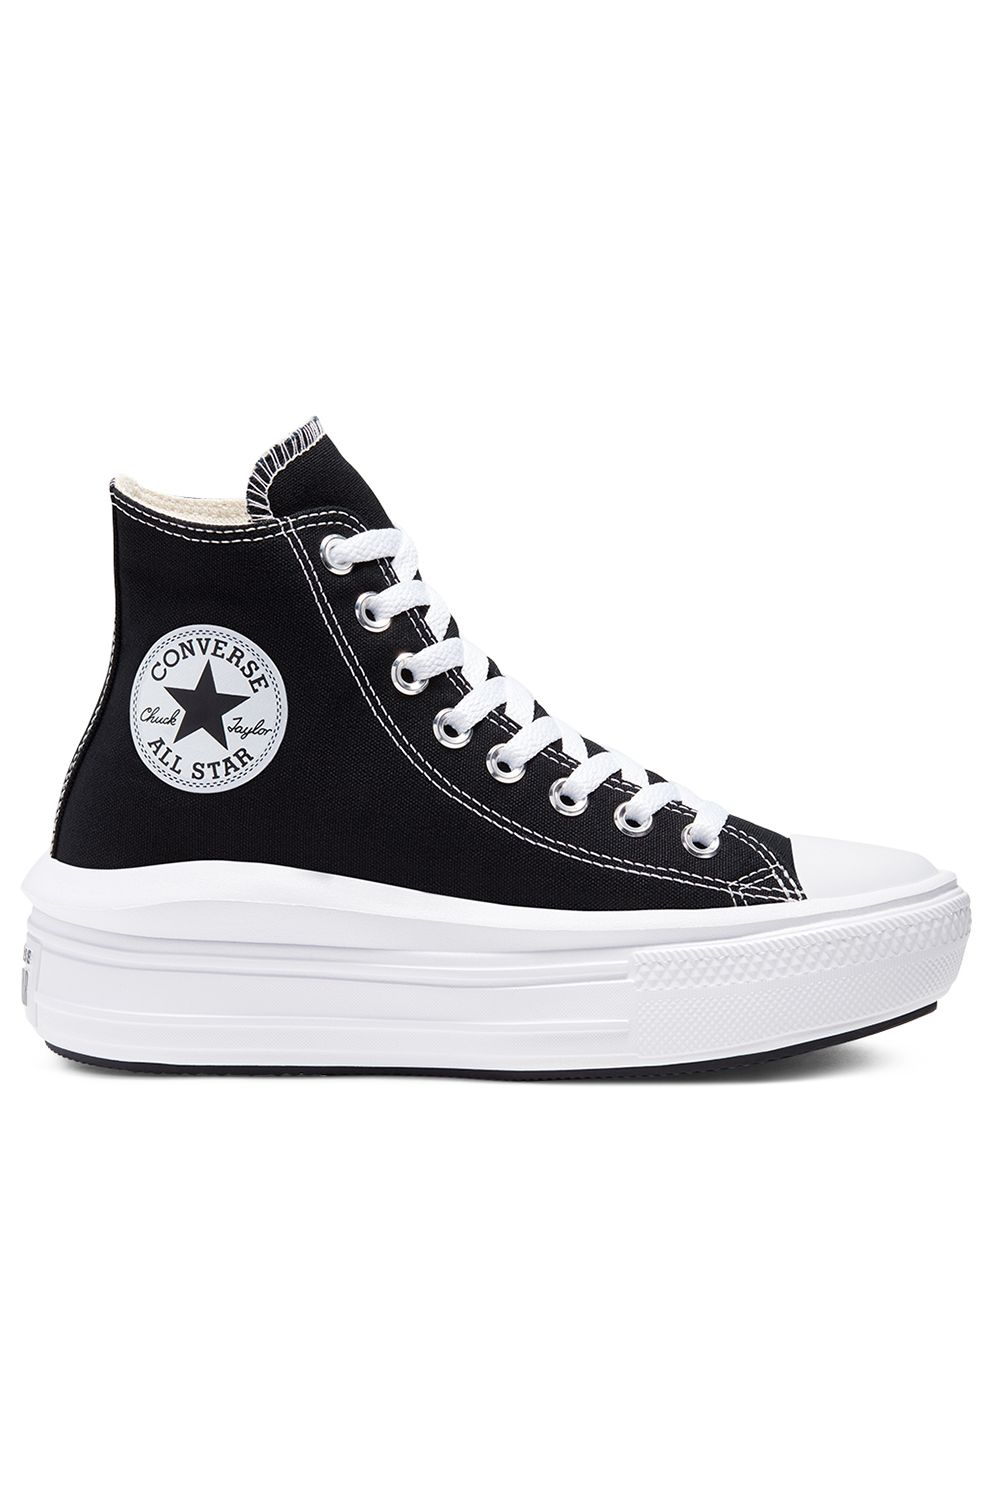 Converse Shoes CHUCK TAYLOR ALL STAR MOVE HI Black/Natural Ivory/White